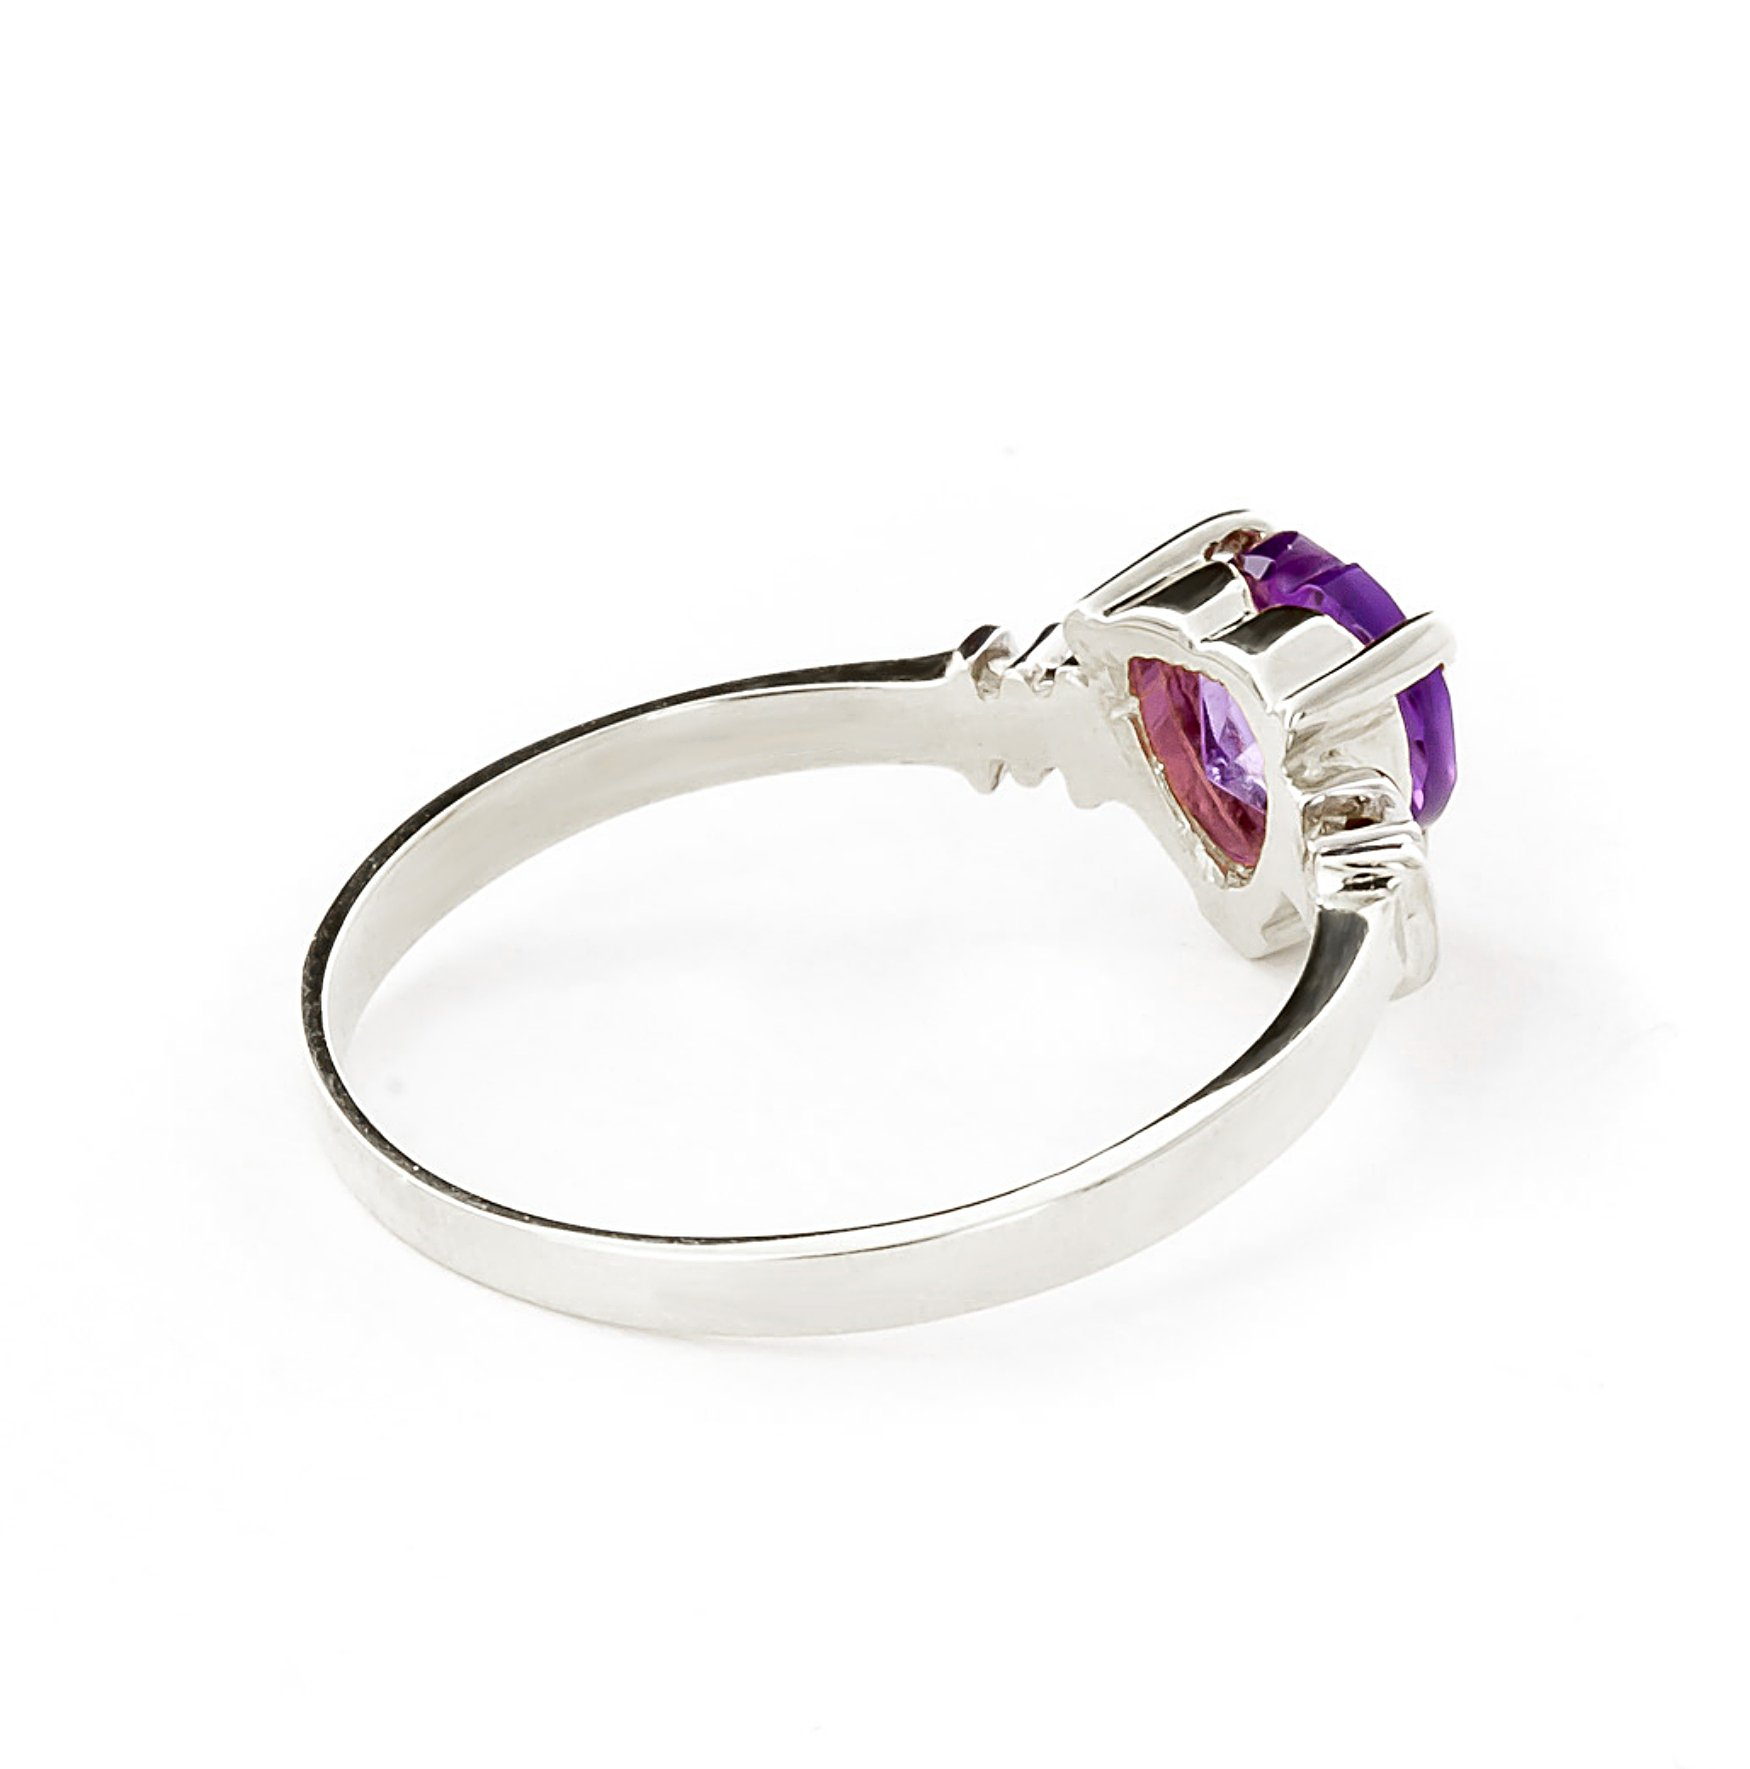 14k White Gold Ring with Genuine Diamonds and Natural Heart-shaped Purple Amethyst - Size 10.0 by Galaxy Gold (Image #3)